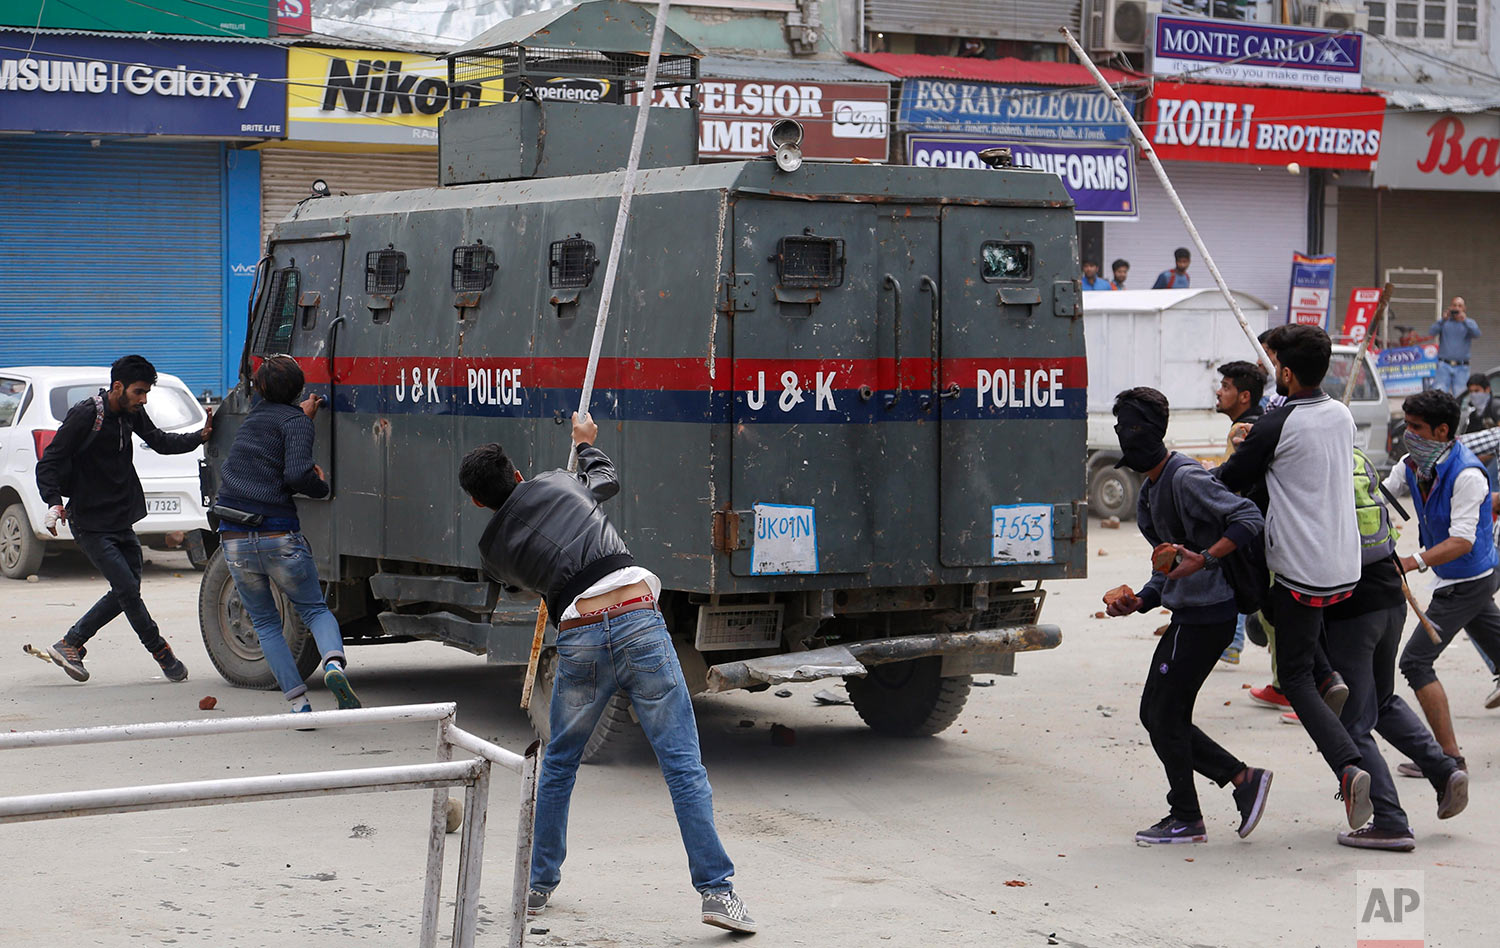 Kashmiri students and other protesters attack an Indian police vehicle as they clash in Srinagar, Indian controlled Kashmir, Monday, April 24, 2017. Tensions between Kashmiri students and Indian law enforcement have escalated since April 15, when government forces raided a college in Pulwama, about 30 kilometers (19 miles) south of Srinagar, to scare anti-India activists. (AP Photo/Mukhtar Khan)